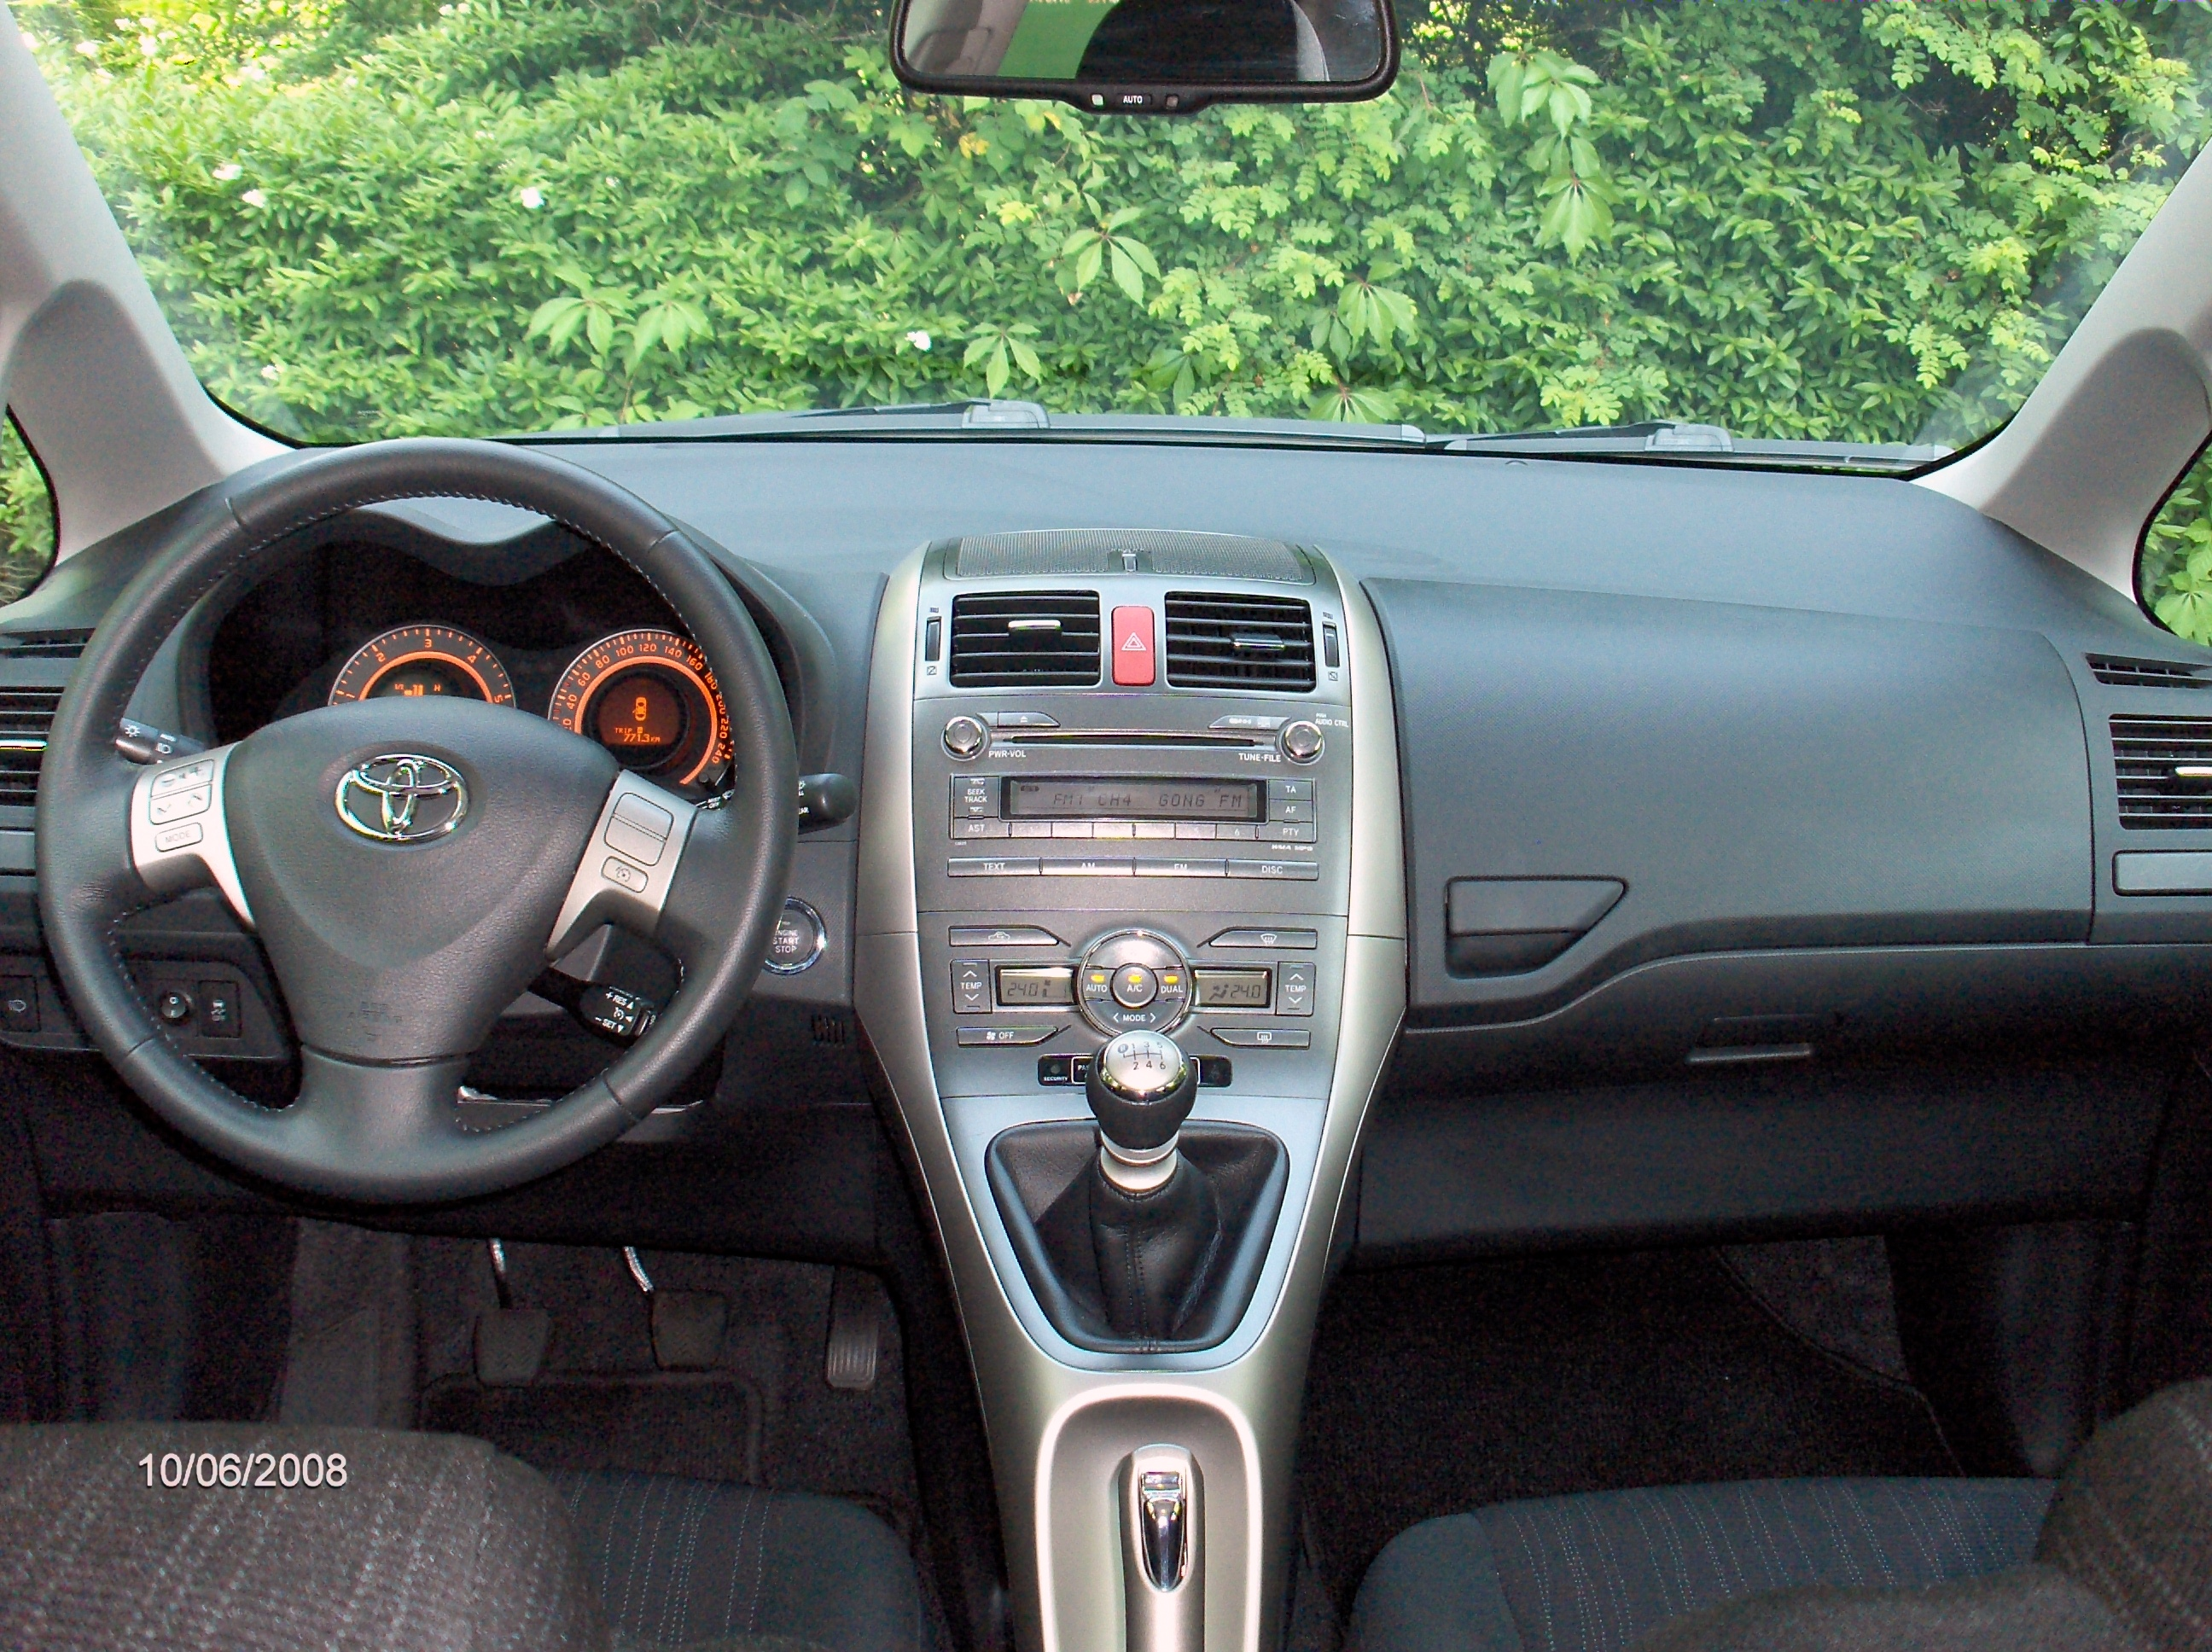 Datei:Toyota Auris Interieur 1.JPG – Wikipedia